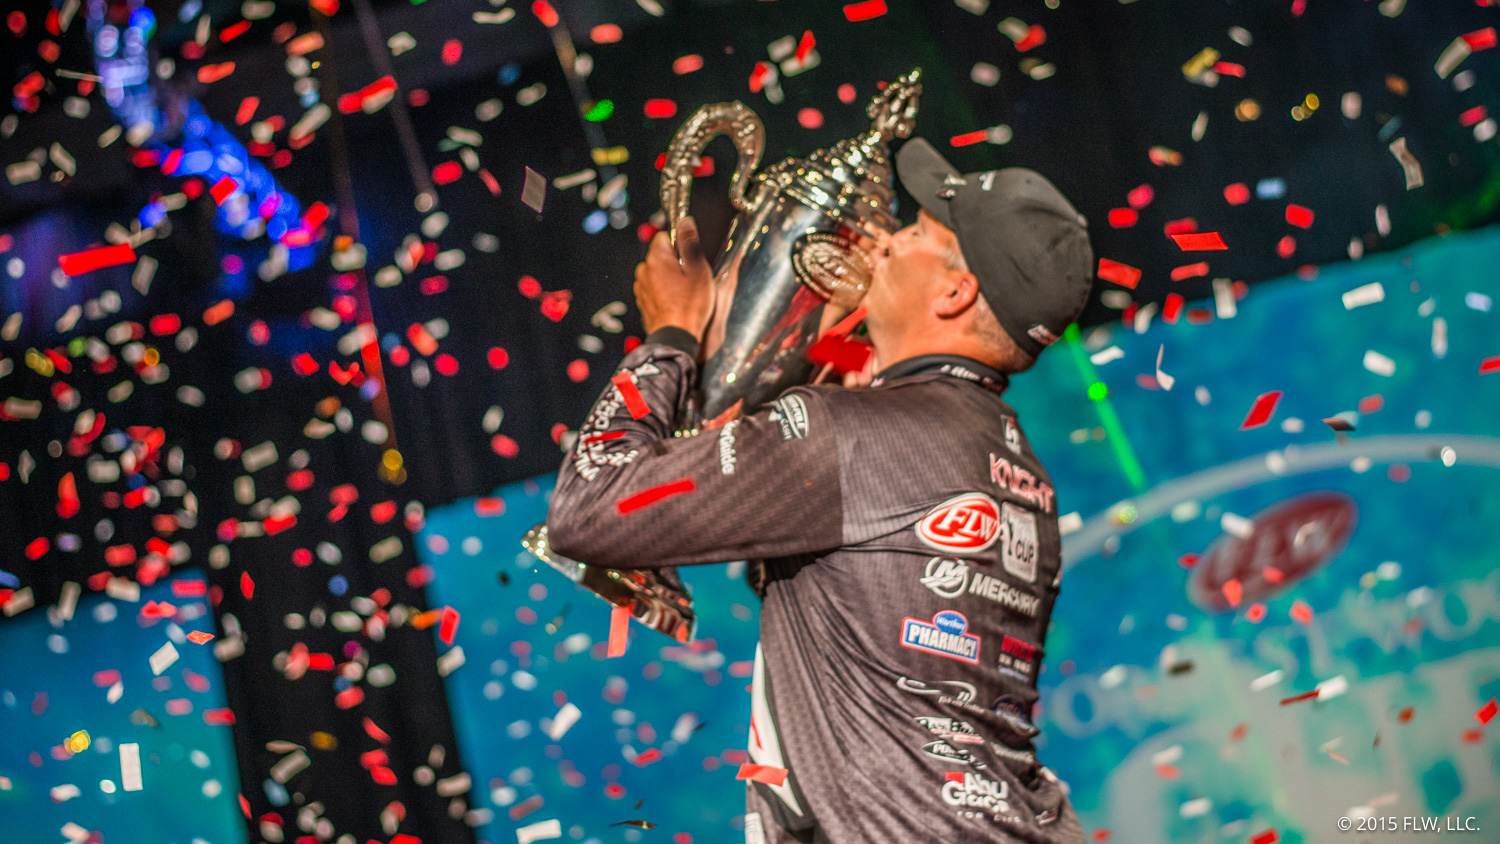 2015 FLW TV - Forrest Wood Cup